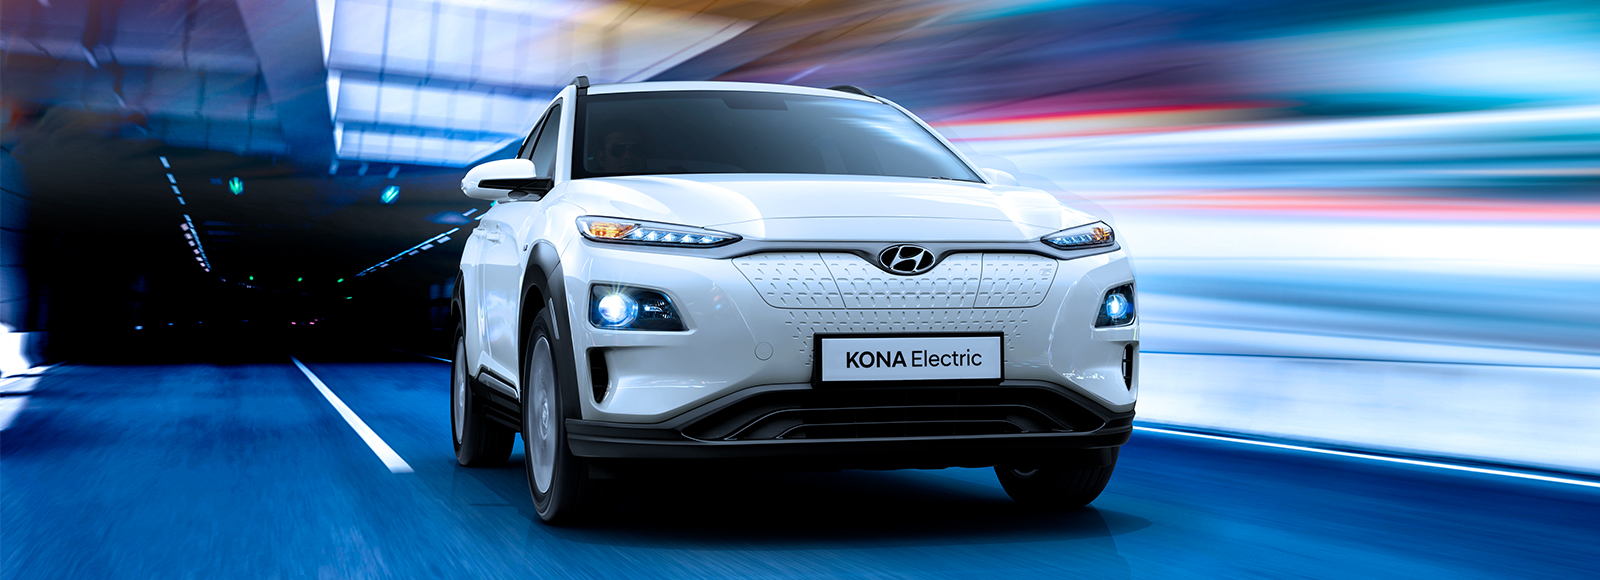 Hyundai Kona – Latest Vehicle for Government Departments